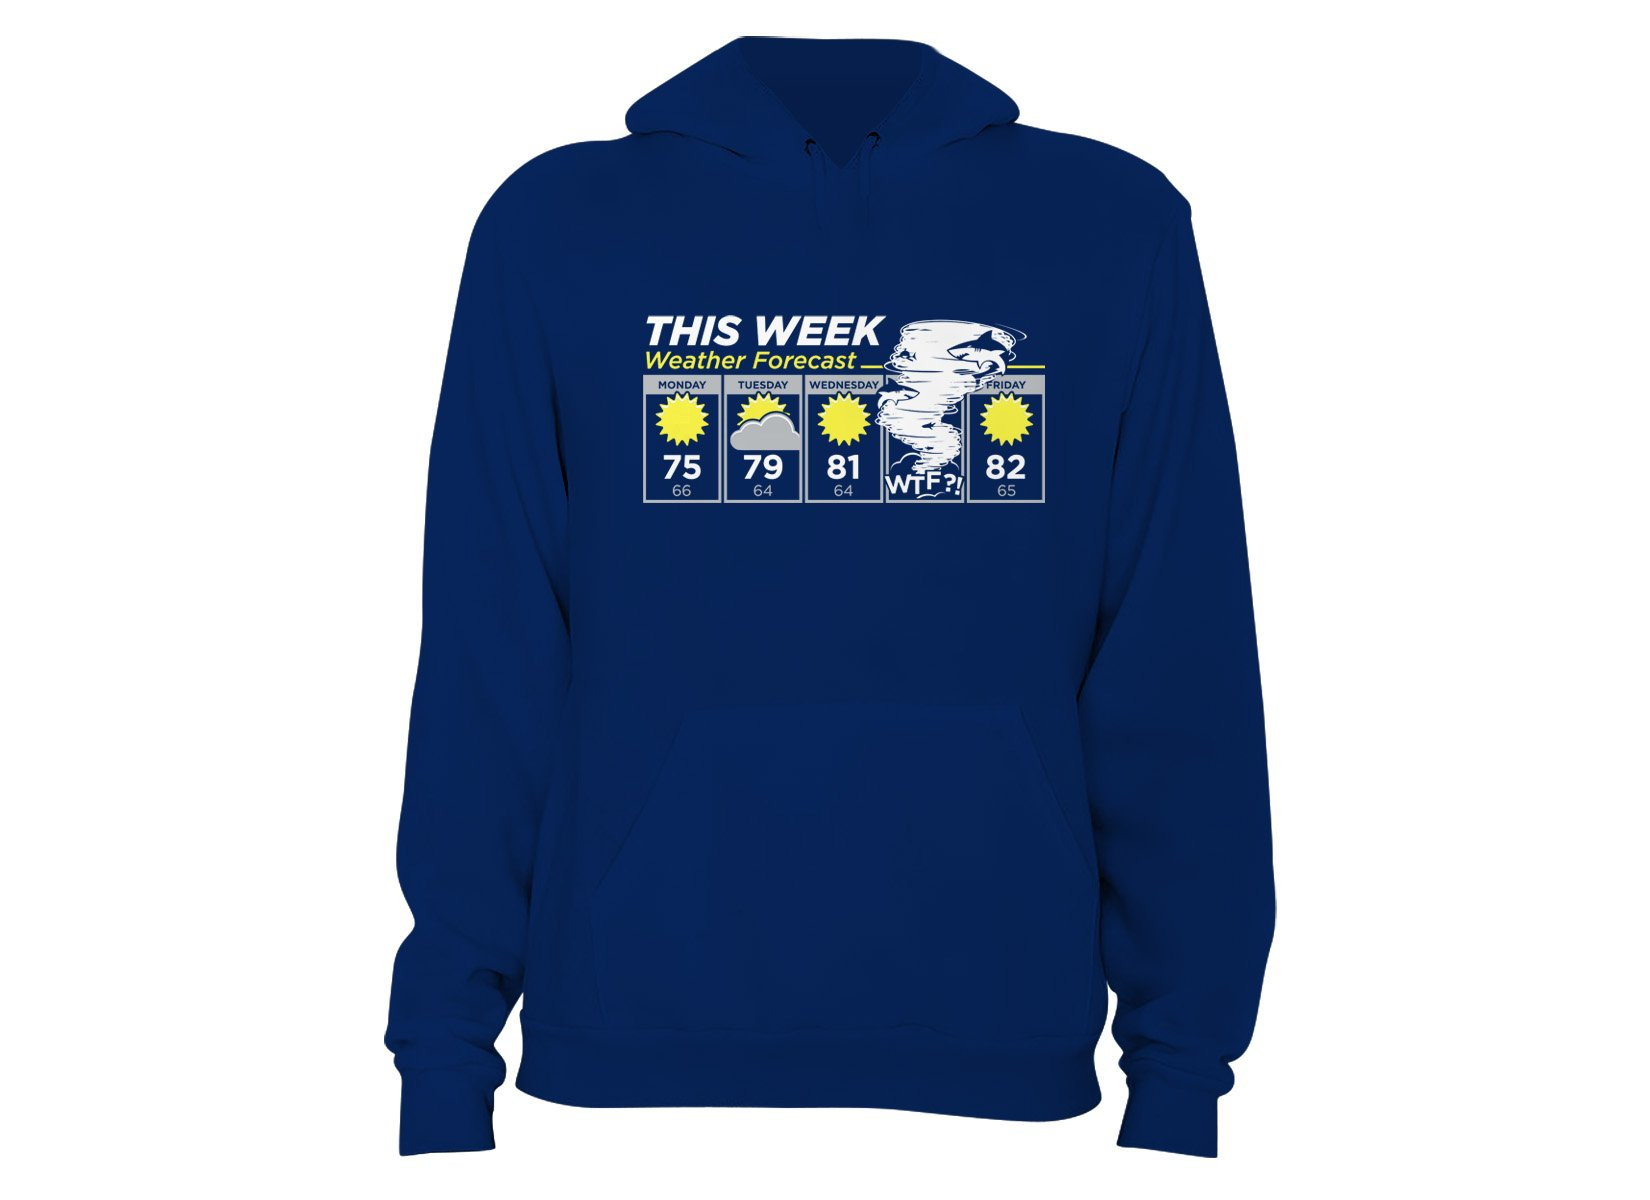 Shark Weather Forecast on Hoodie